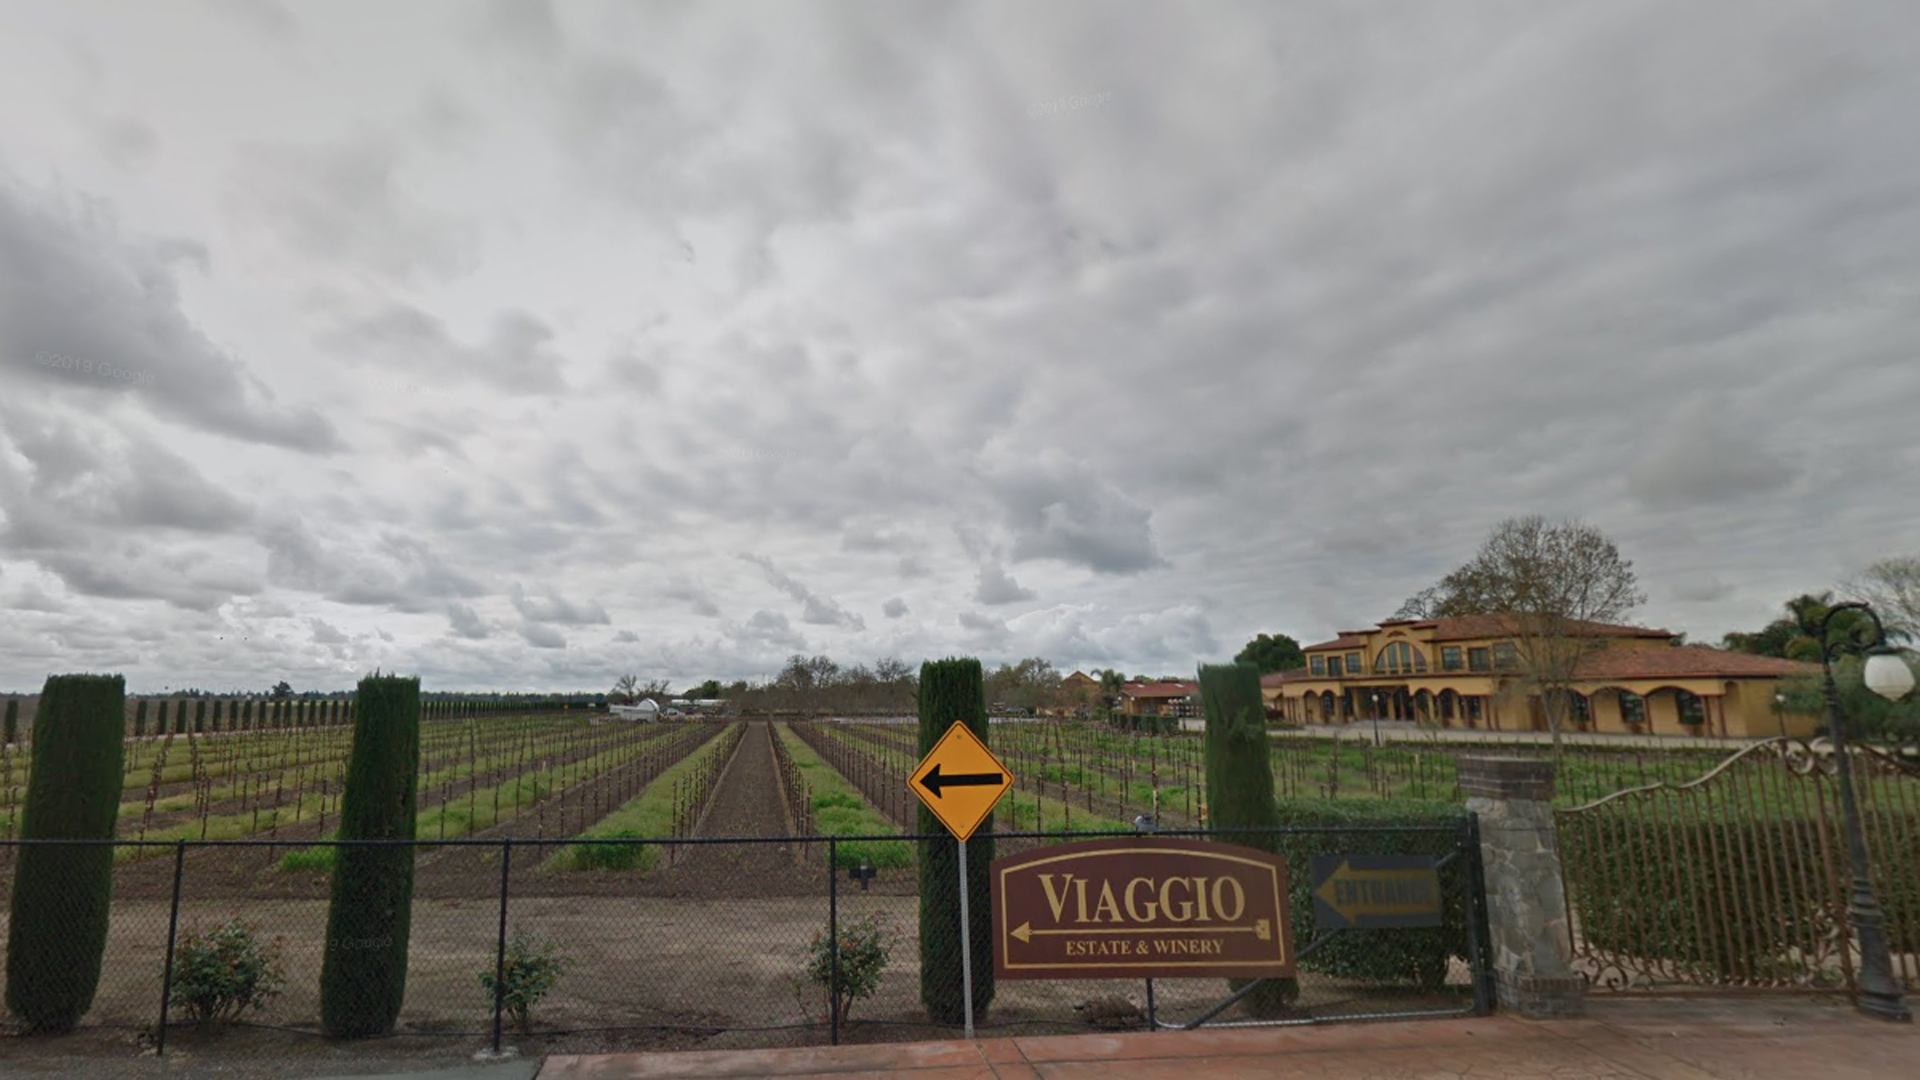 Viaggio Estate and Winery in Acamp, Calif. appears in an undated image from Google Maps.